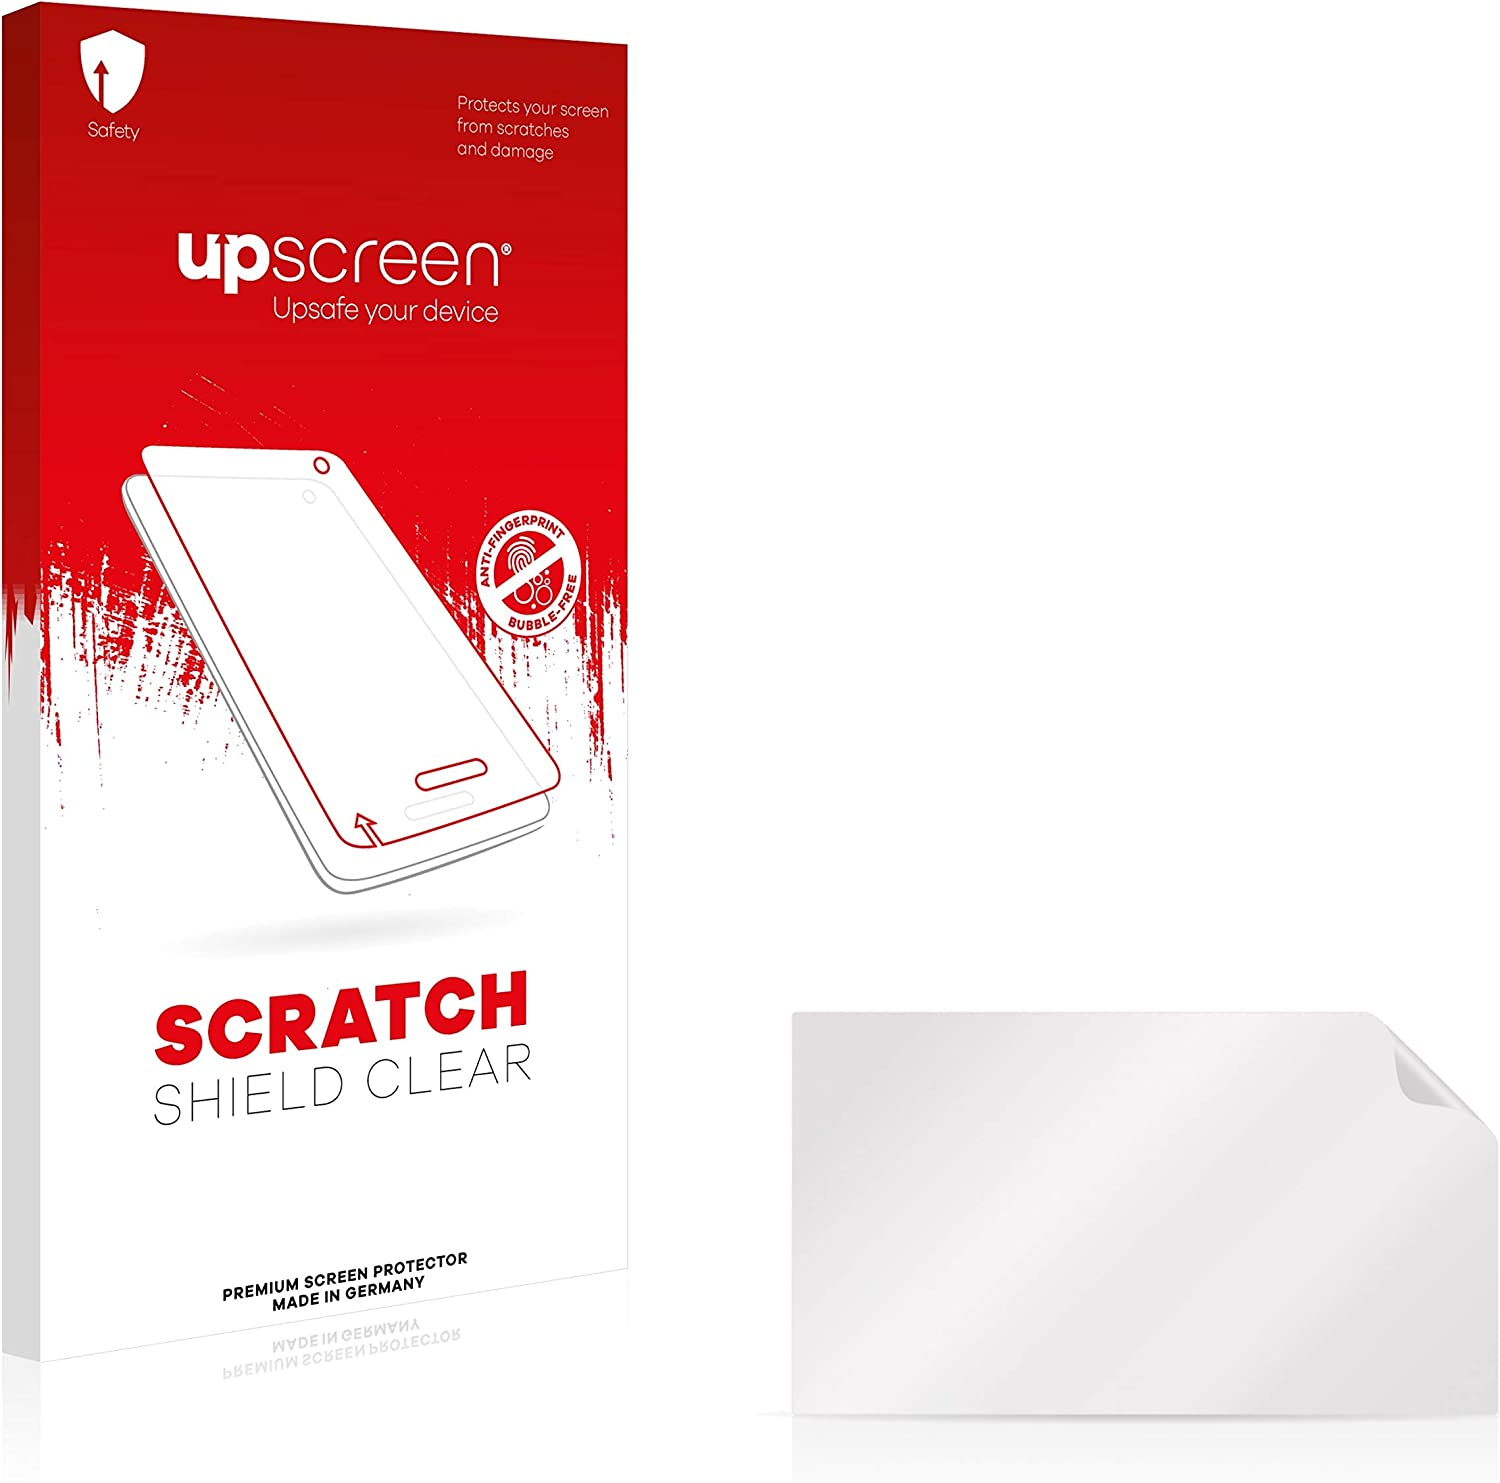 Multitouch Optimized Strong Scratch Protection upscreen Scratch Shield Clear Screen Protector for Sony HDR-CX900 High Transparency